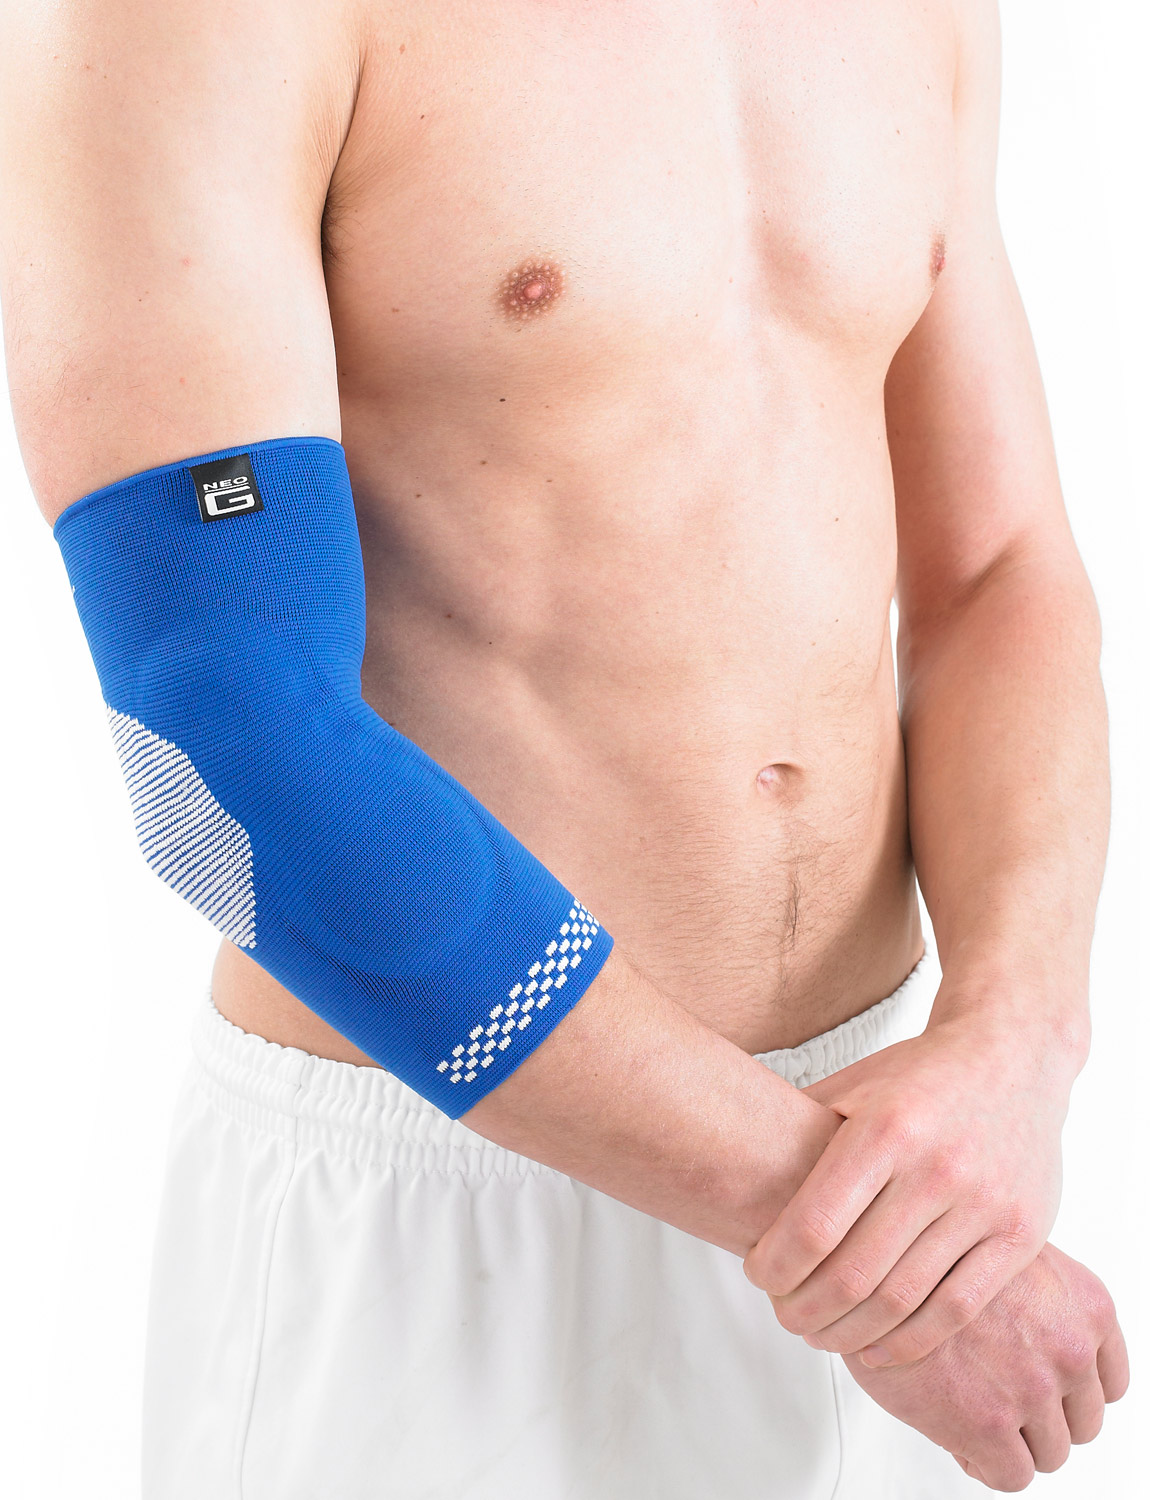 458 -ELBOW SUPPORT WITH SILICONE JOINT CUSHIONS  Support features silicone joint cushions on either side to help protect, support and reduce impact on the elbow joint. Lightweight, breathable and seamless knit fabric provides Multi Zone Compression (MZC) for optimum fit, comfort and durability. The product fits the Left or Right elbow and is Unisex. Helps strains, sprains and instability. Helps support injured, weak or arthritic elbows. Ideal for sports training and rehabilitation of sporting and occupational injuries whilst also helping reduce the likelihood of re-injury